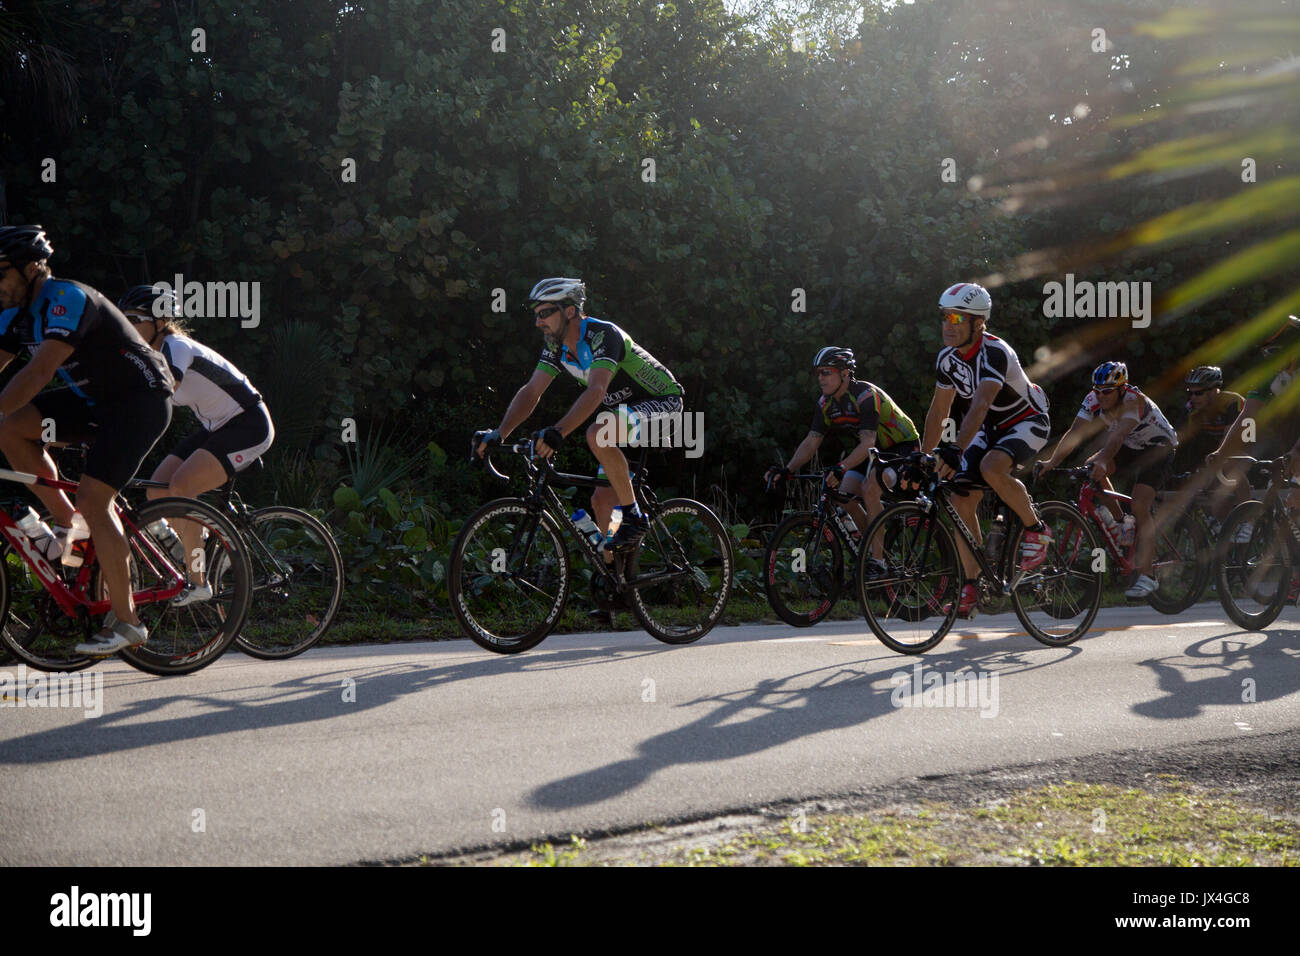 Cyclists riding in a group. - Stock Image